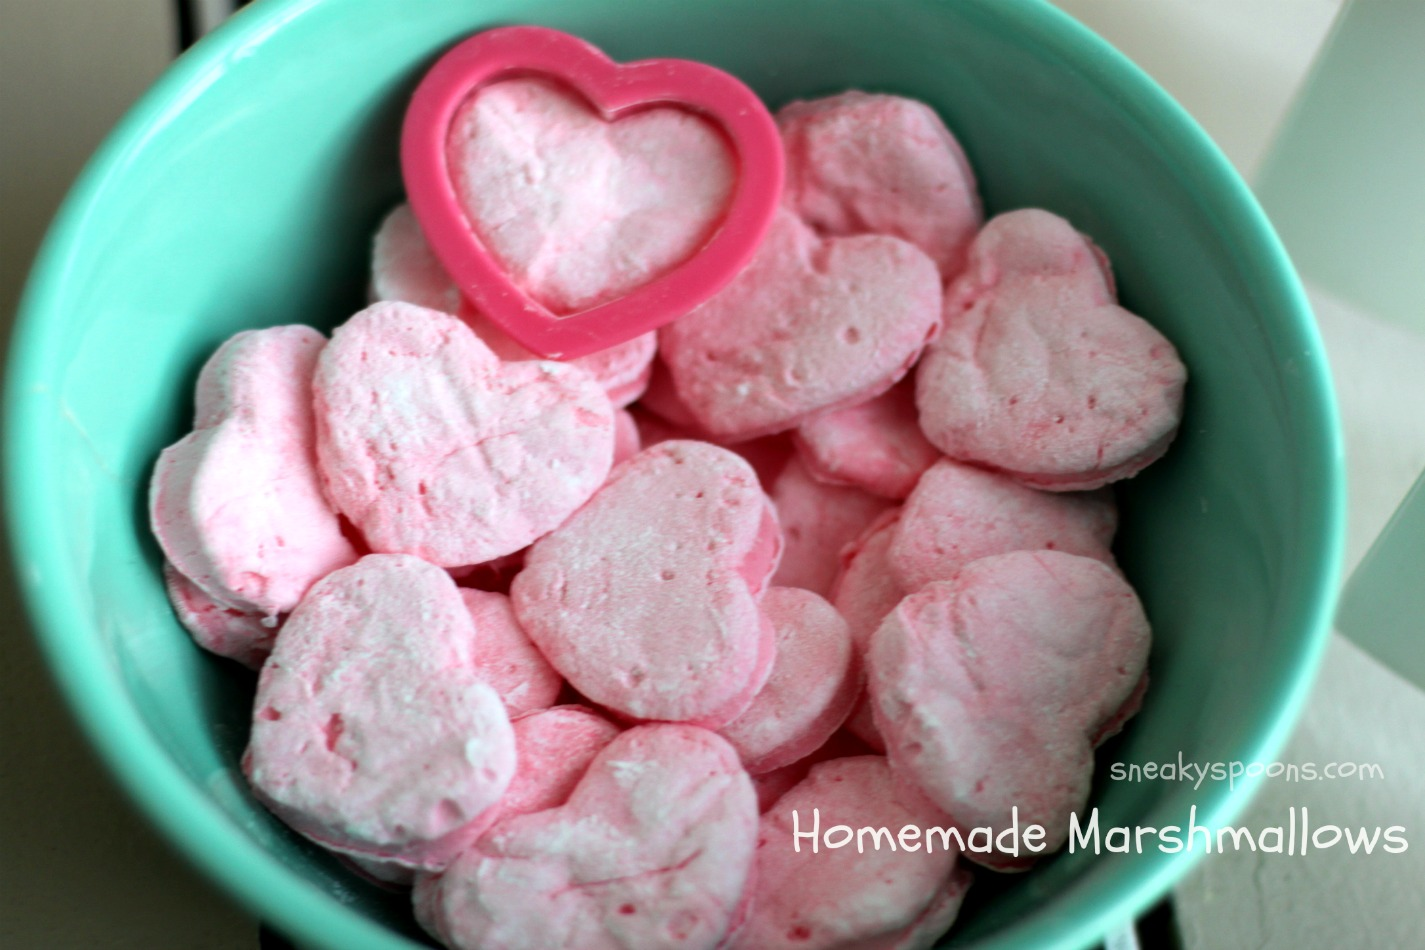 Heart Shaped Homemade Marshmallows | SneakySpoons